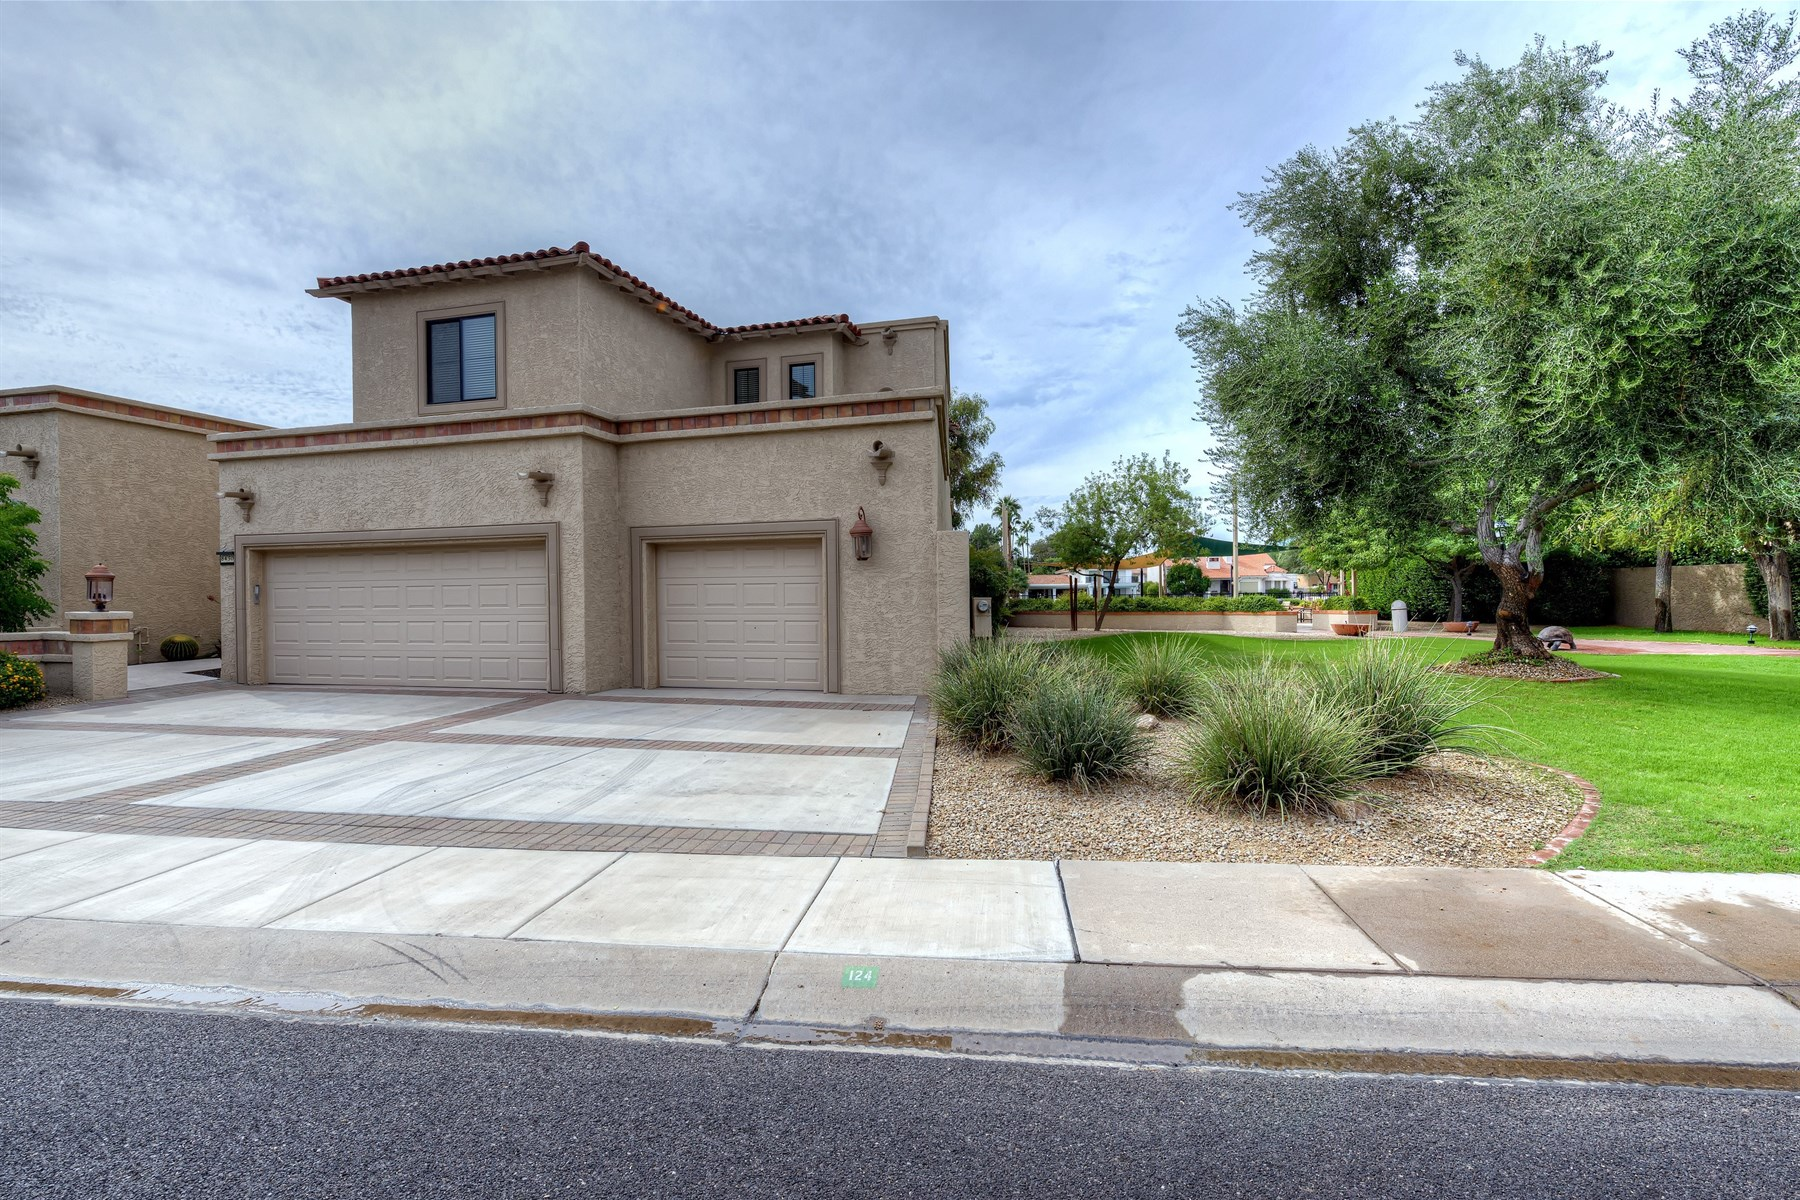 Townhouse for Sale at Lovely waterfront home in the beautiful community of Las Palomas 8450 N 84th St Scottsdale, Arizona, 85258 United States